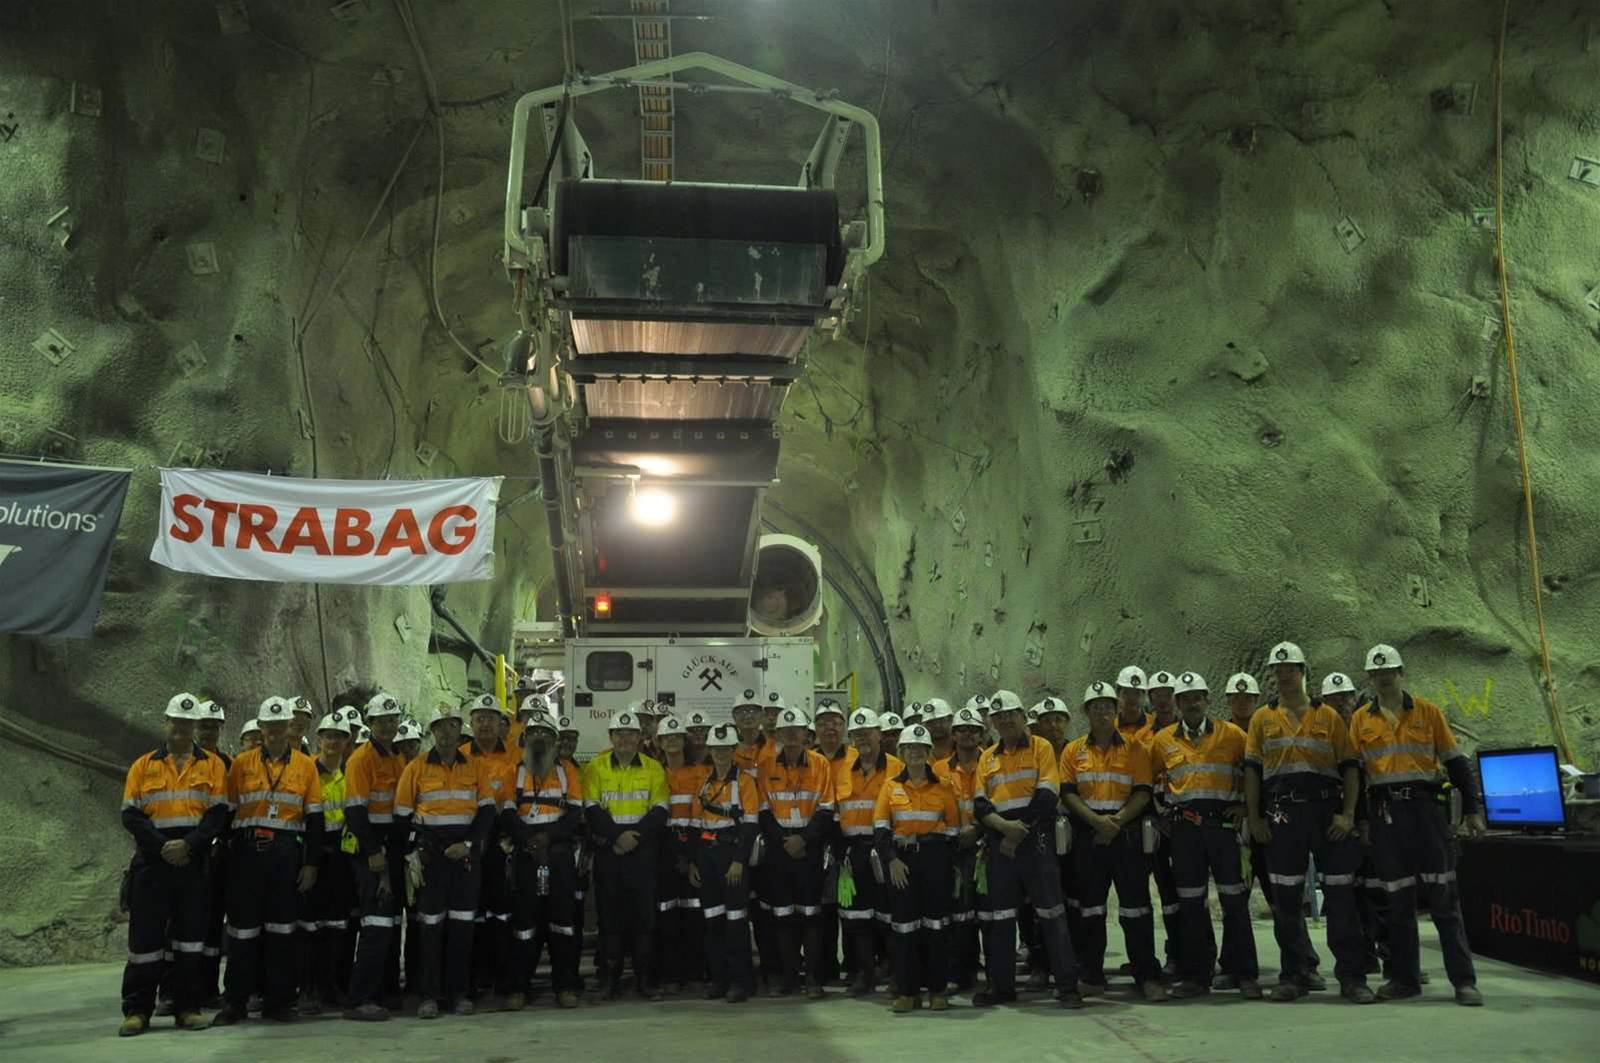 Photos: Rio Tinto trials 64m-long tunnelling machine